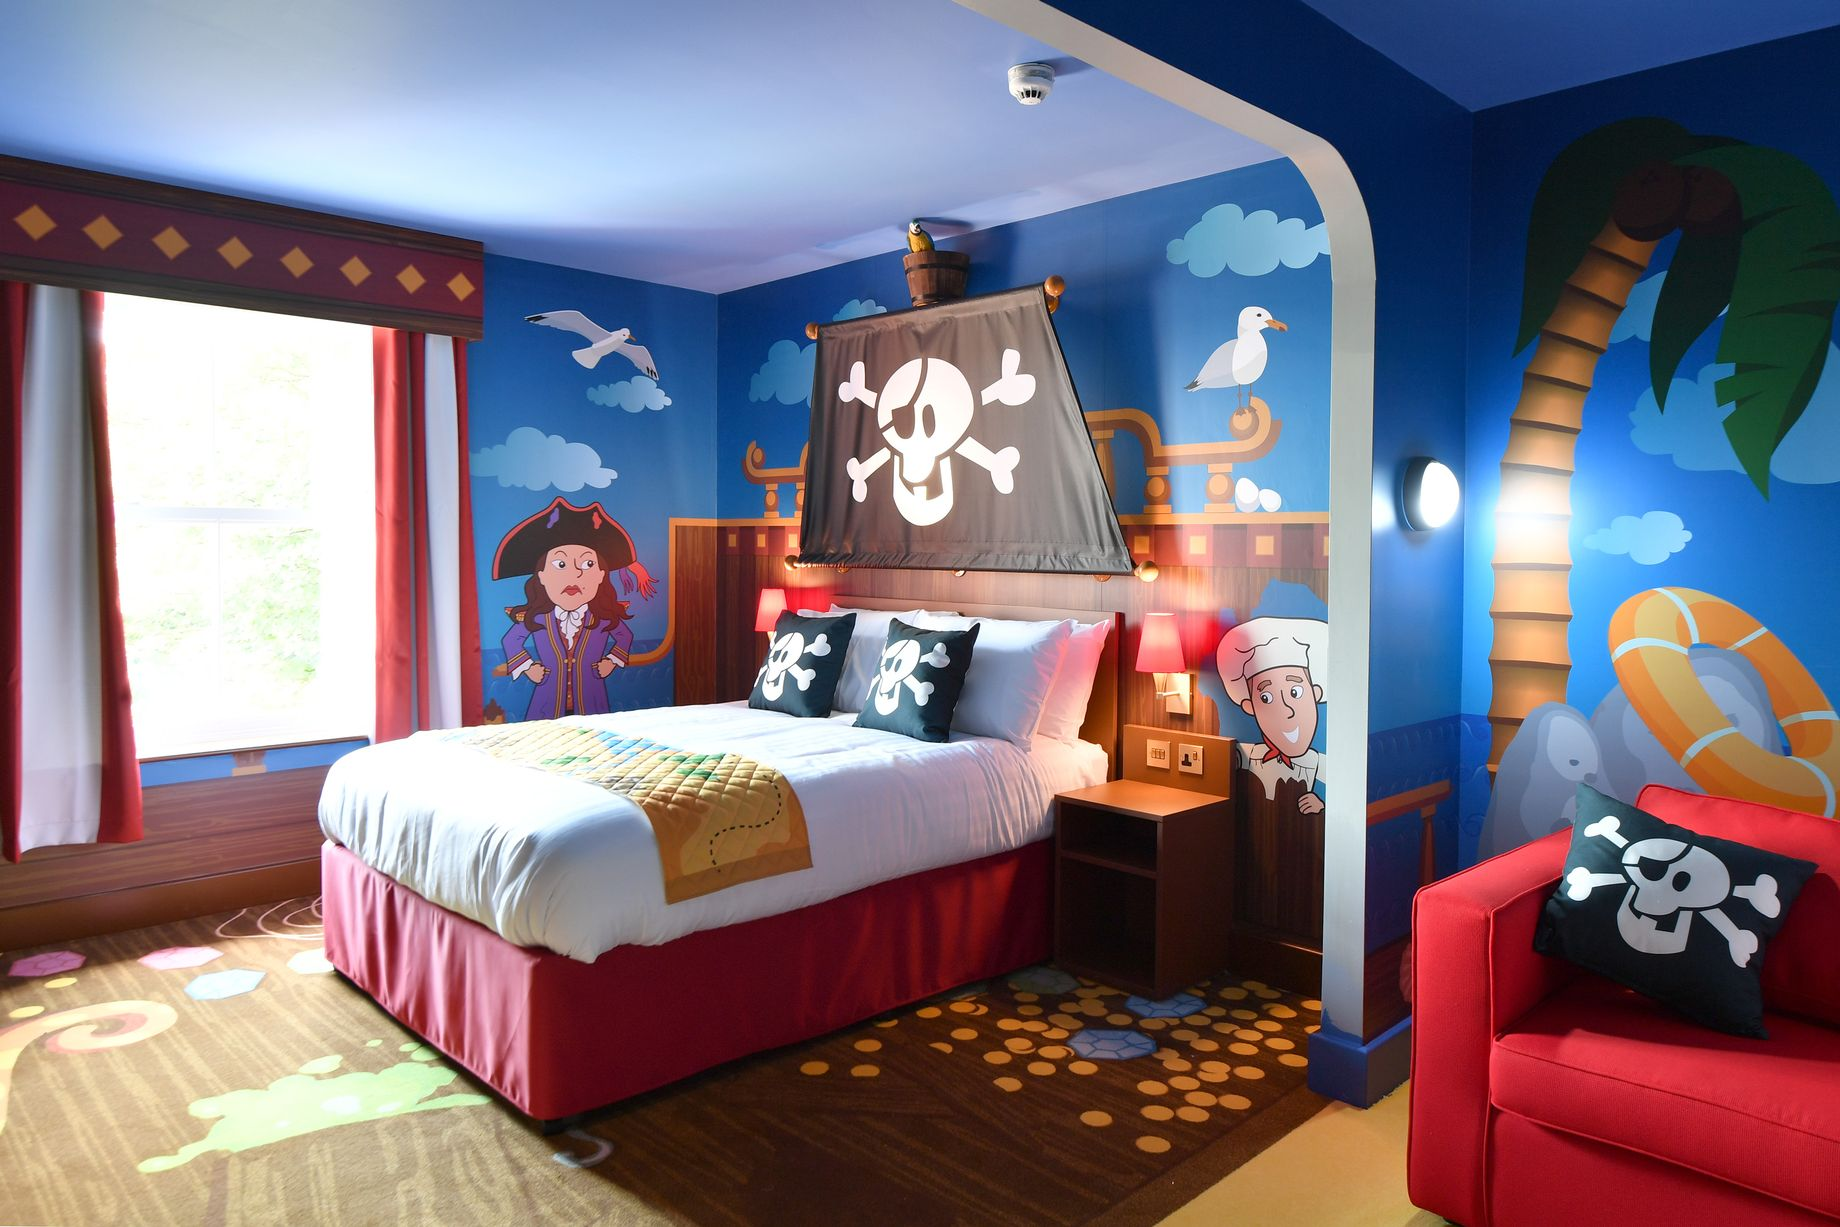 CBEEBIES LAND HOTEL ALTON TOWERS <strong>| Unique IP themed hotel for young families</strong>